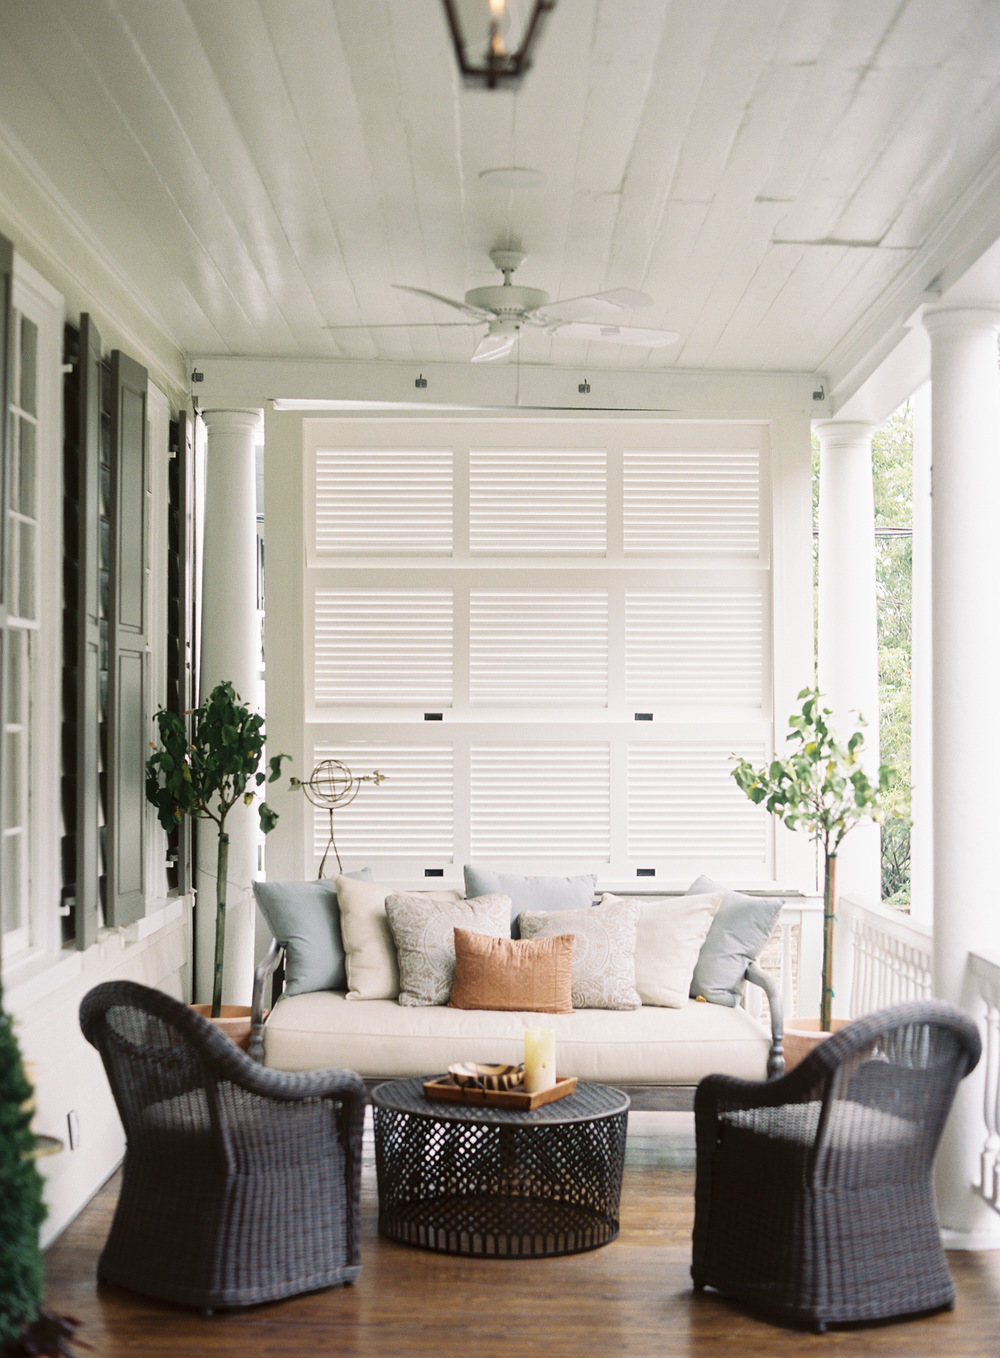 This darling veranda makes the case for outdoor living.